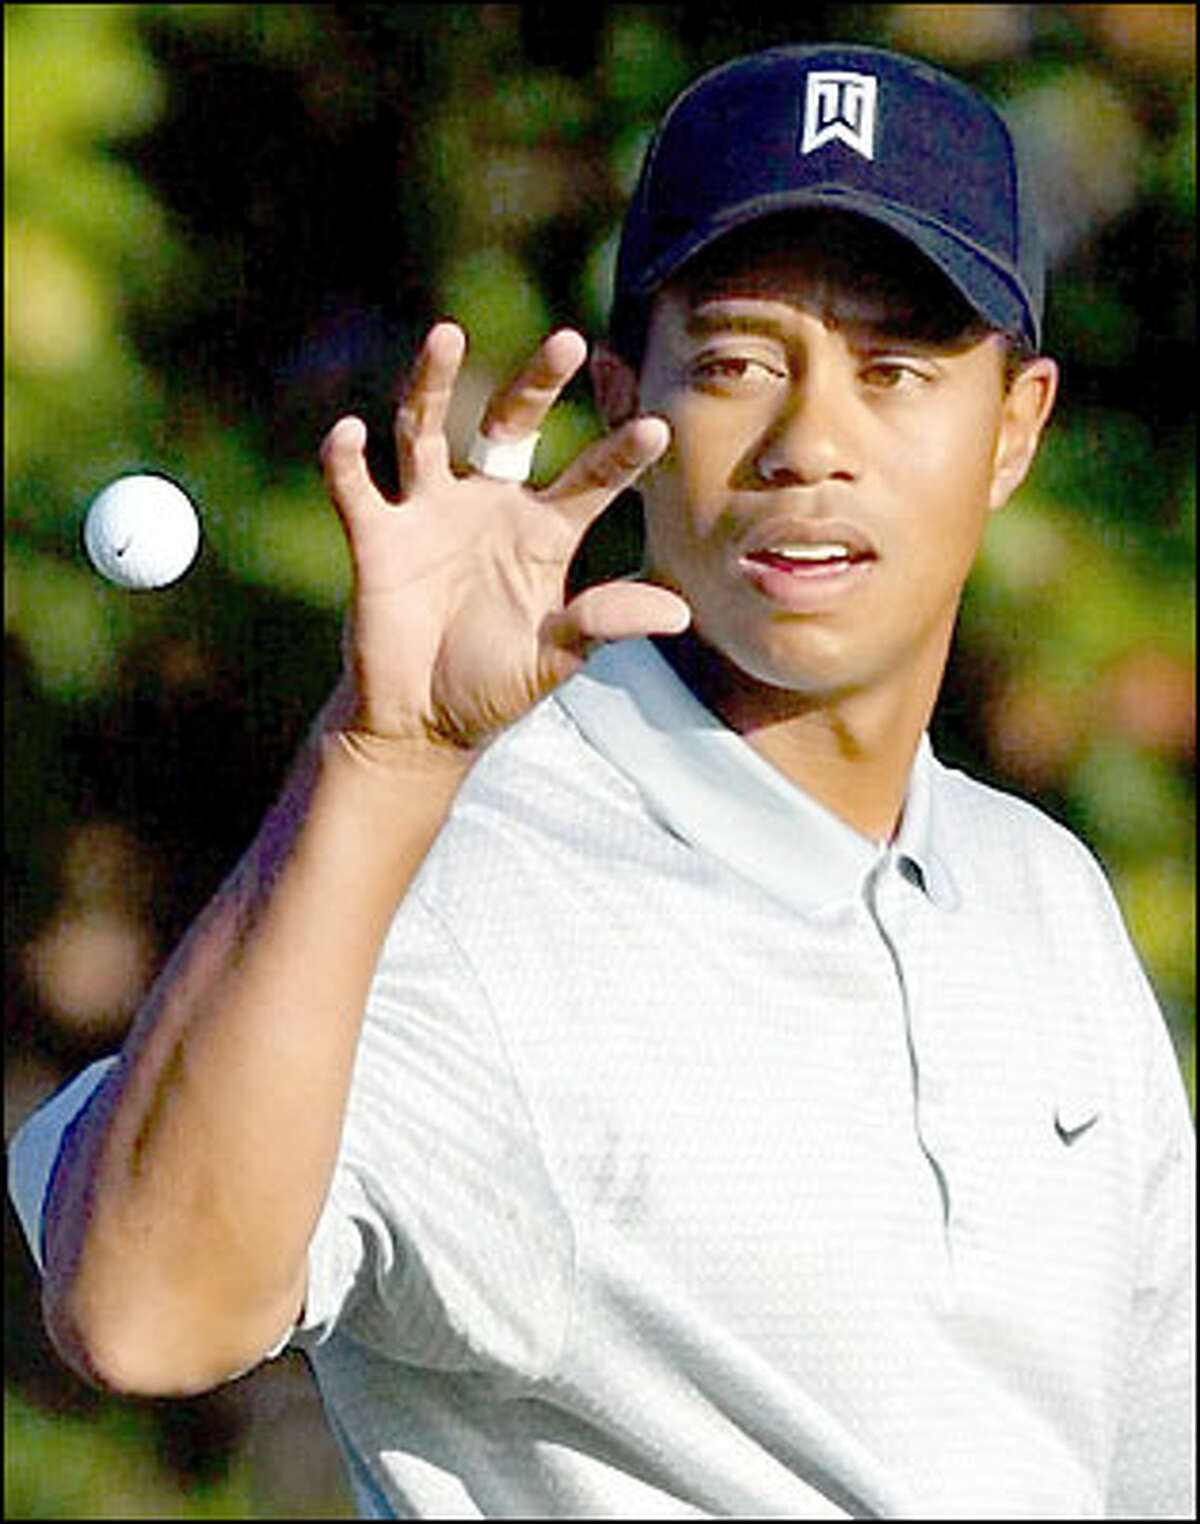 Tiger Woods has won seven of the past 13 major championships and has been No. 1 in the World Golf Rankings 157 consecutive weeks.